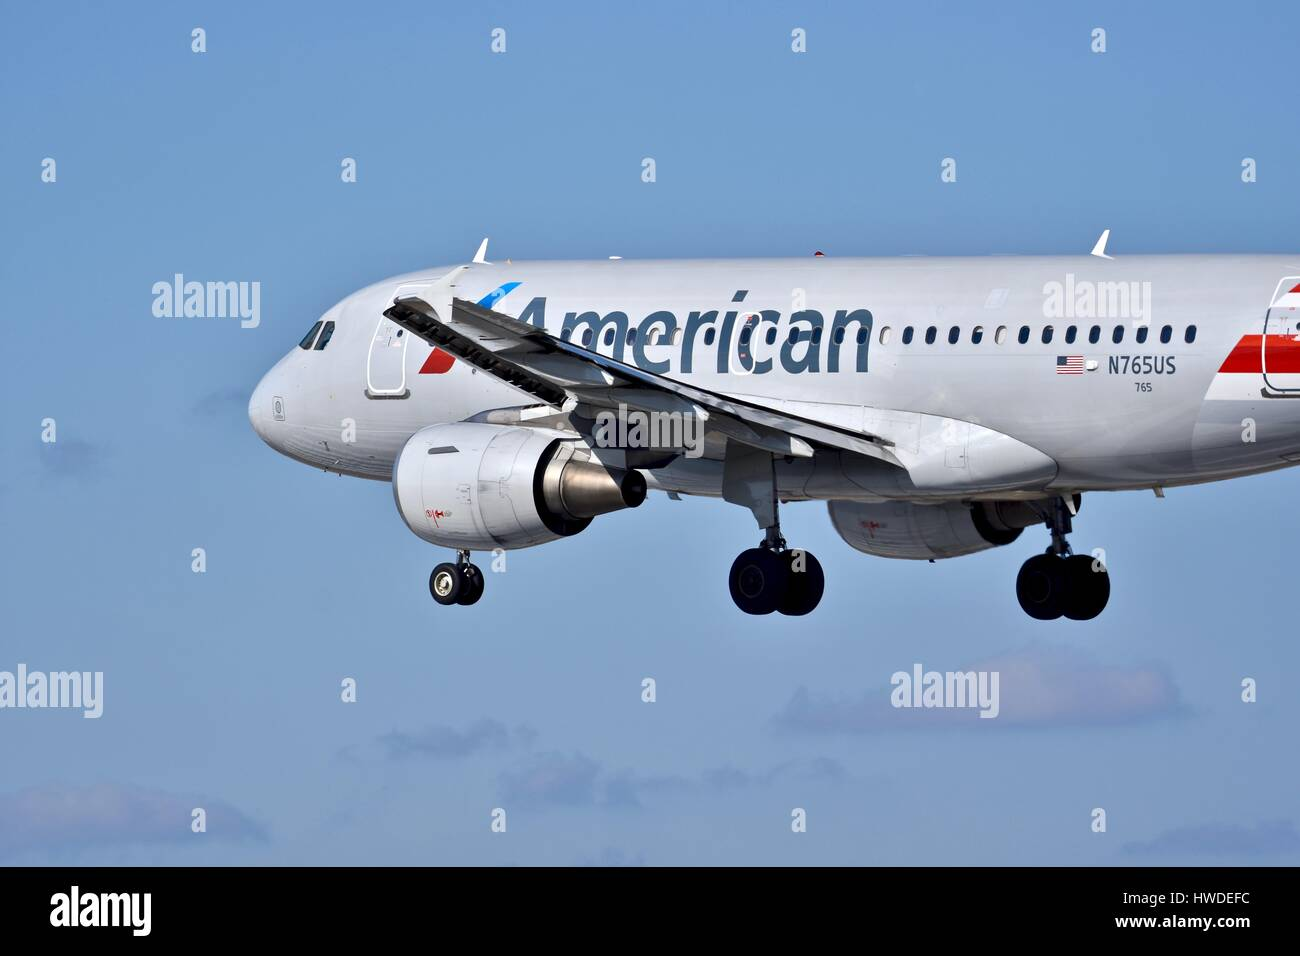 American Airlines Plane Stock Photos Amp American Airlines